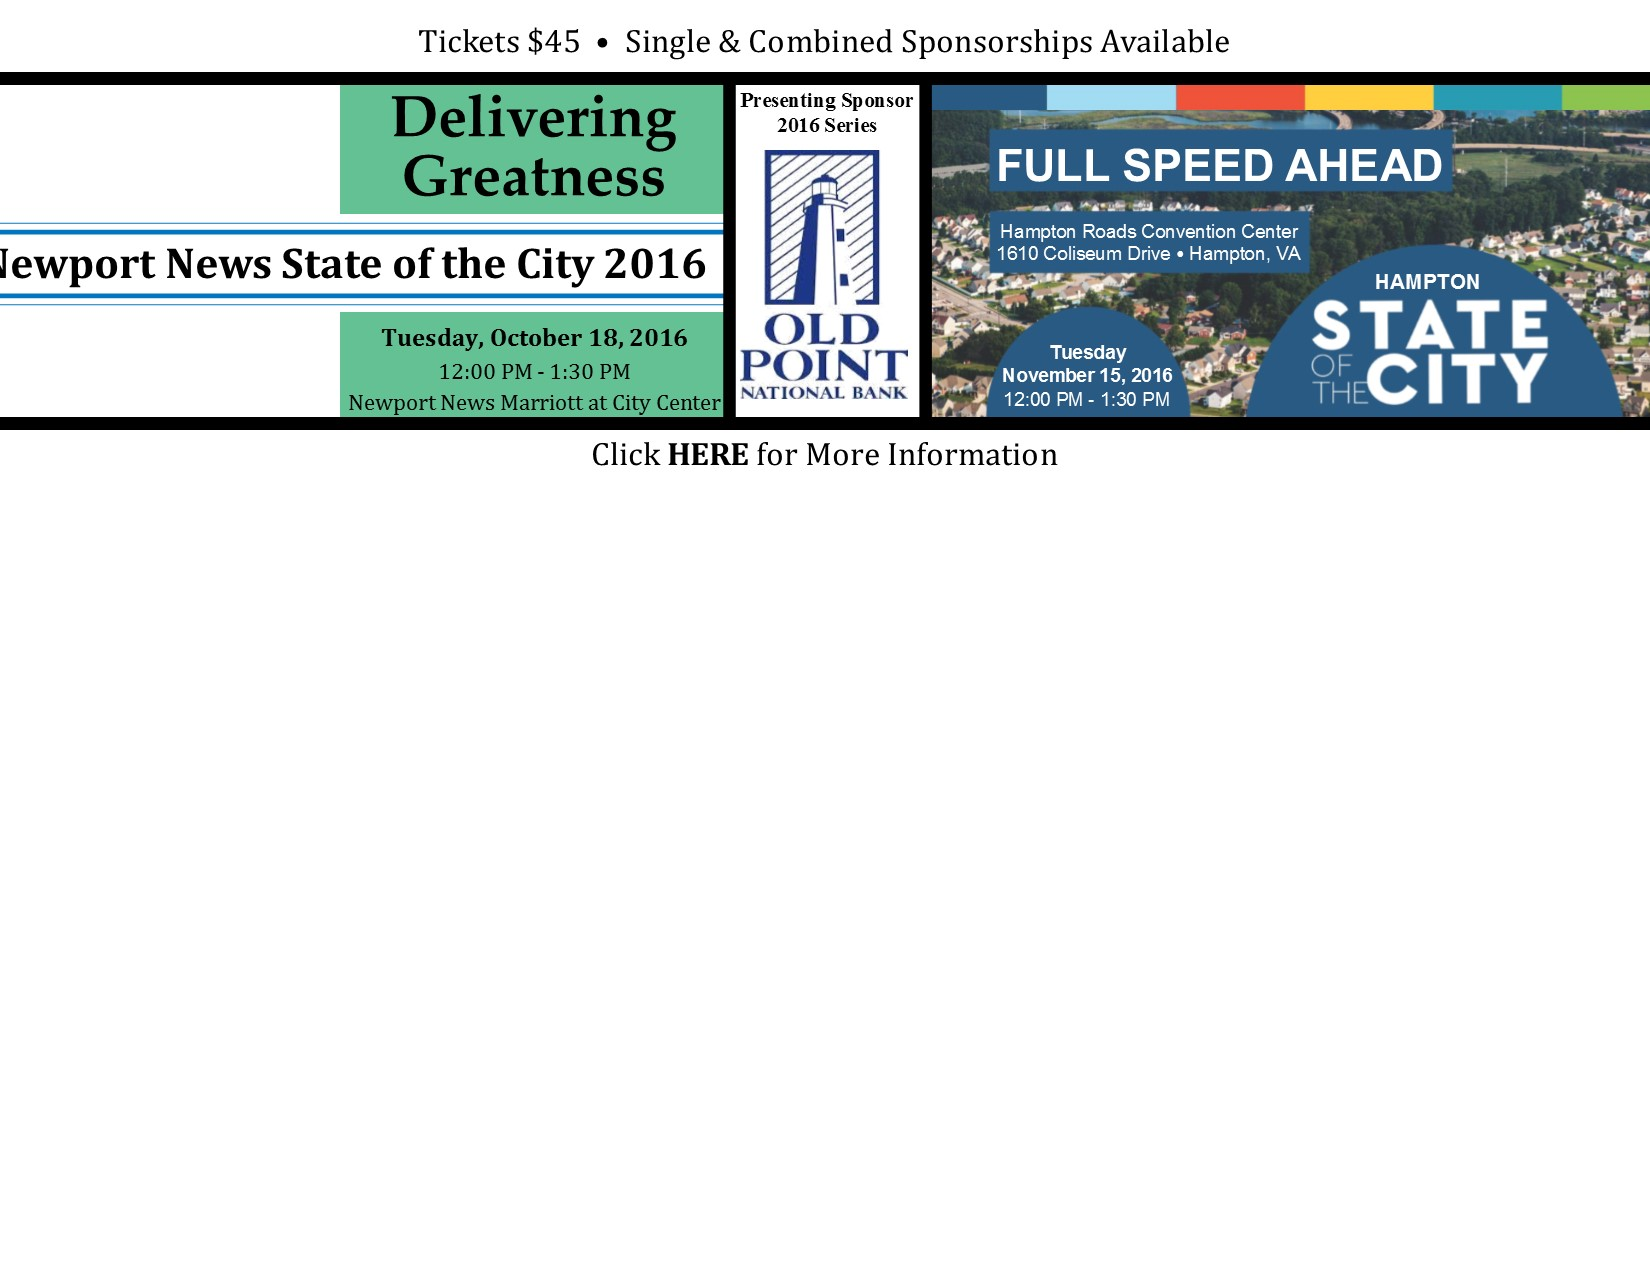 State-of-the-City-COMBINED---Website-Banner--no-lion.jpg